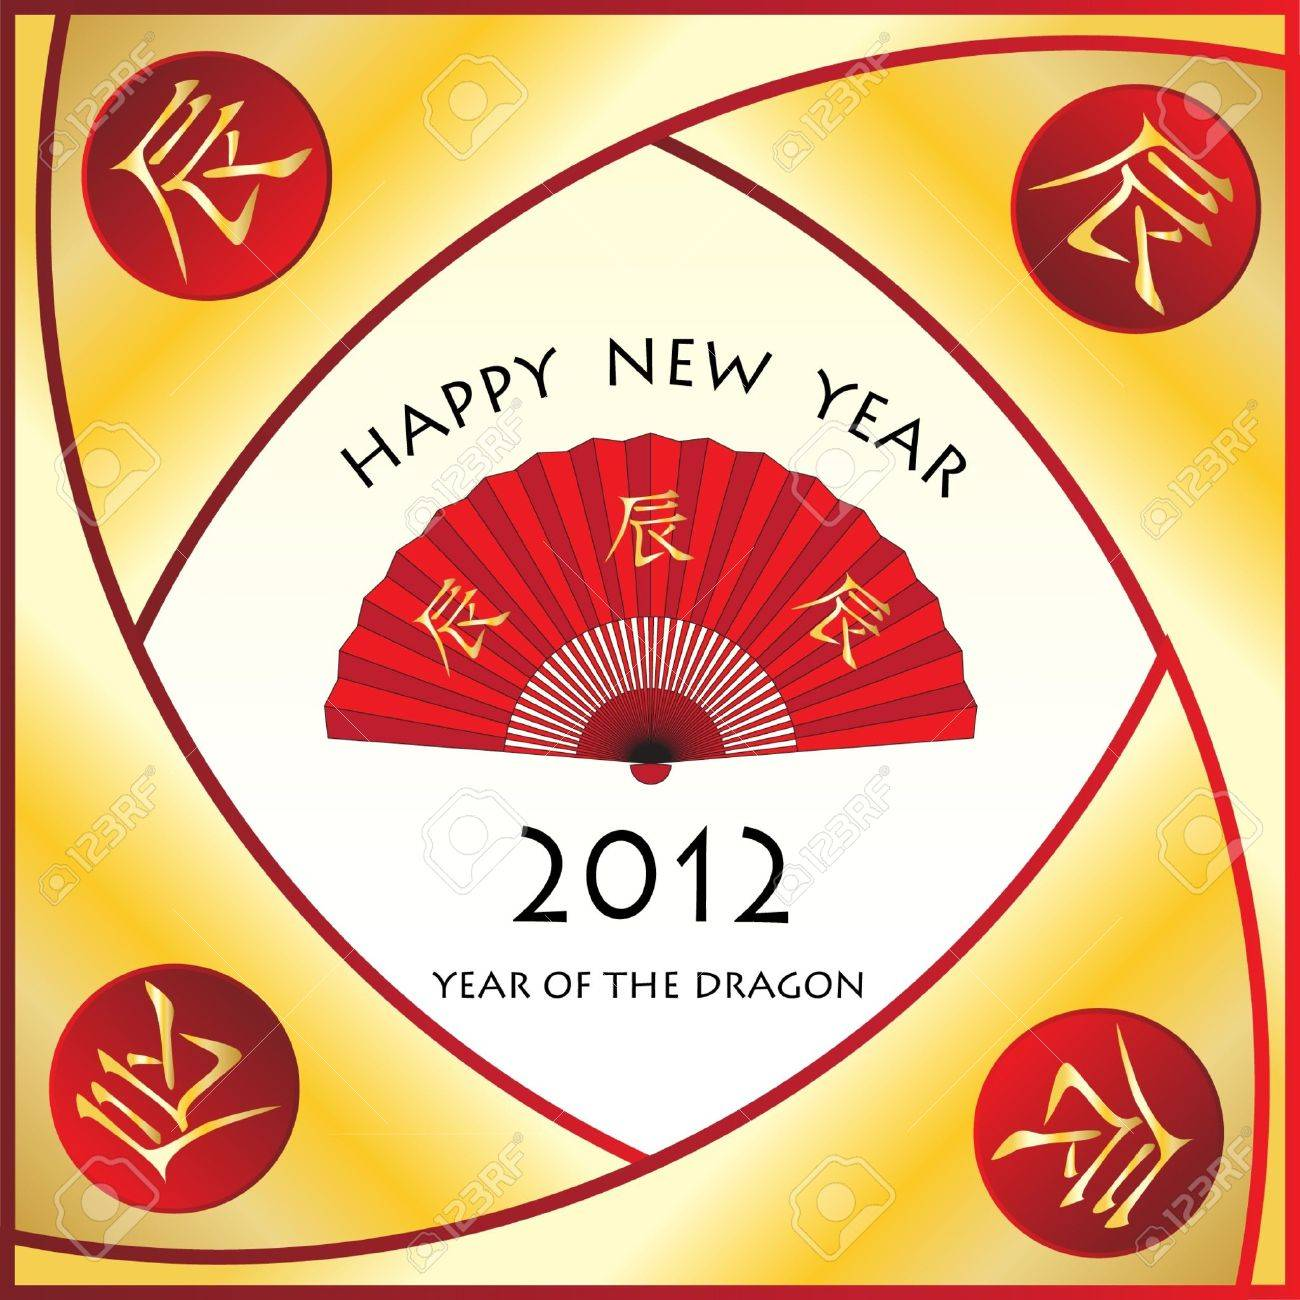 Happy new year wishes for Chinese Year of the Dragon 2012. Chinese style with symbols for a dragon and fan icon. Stock Vector - 11031638